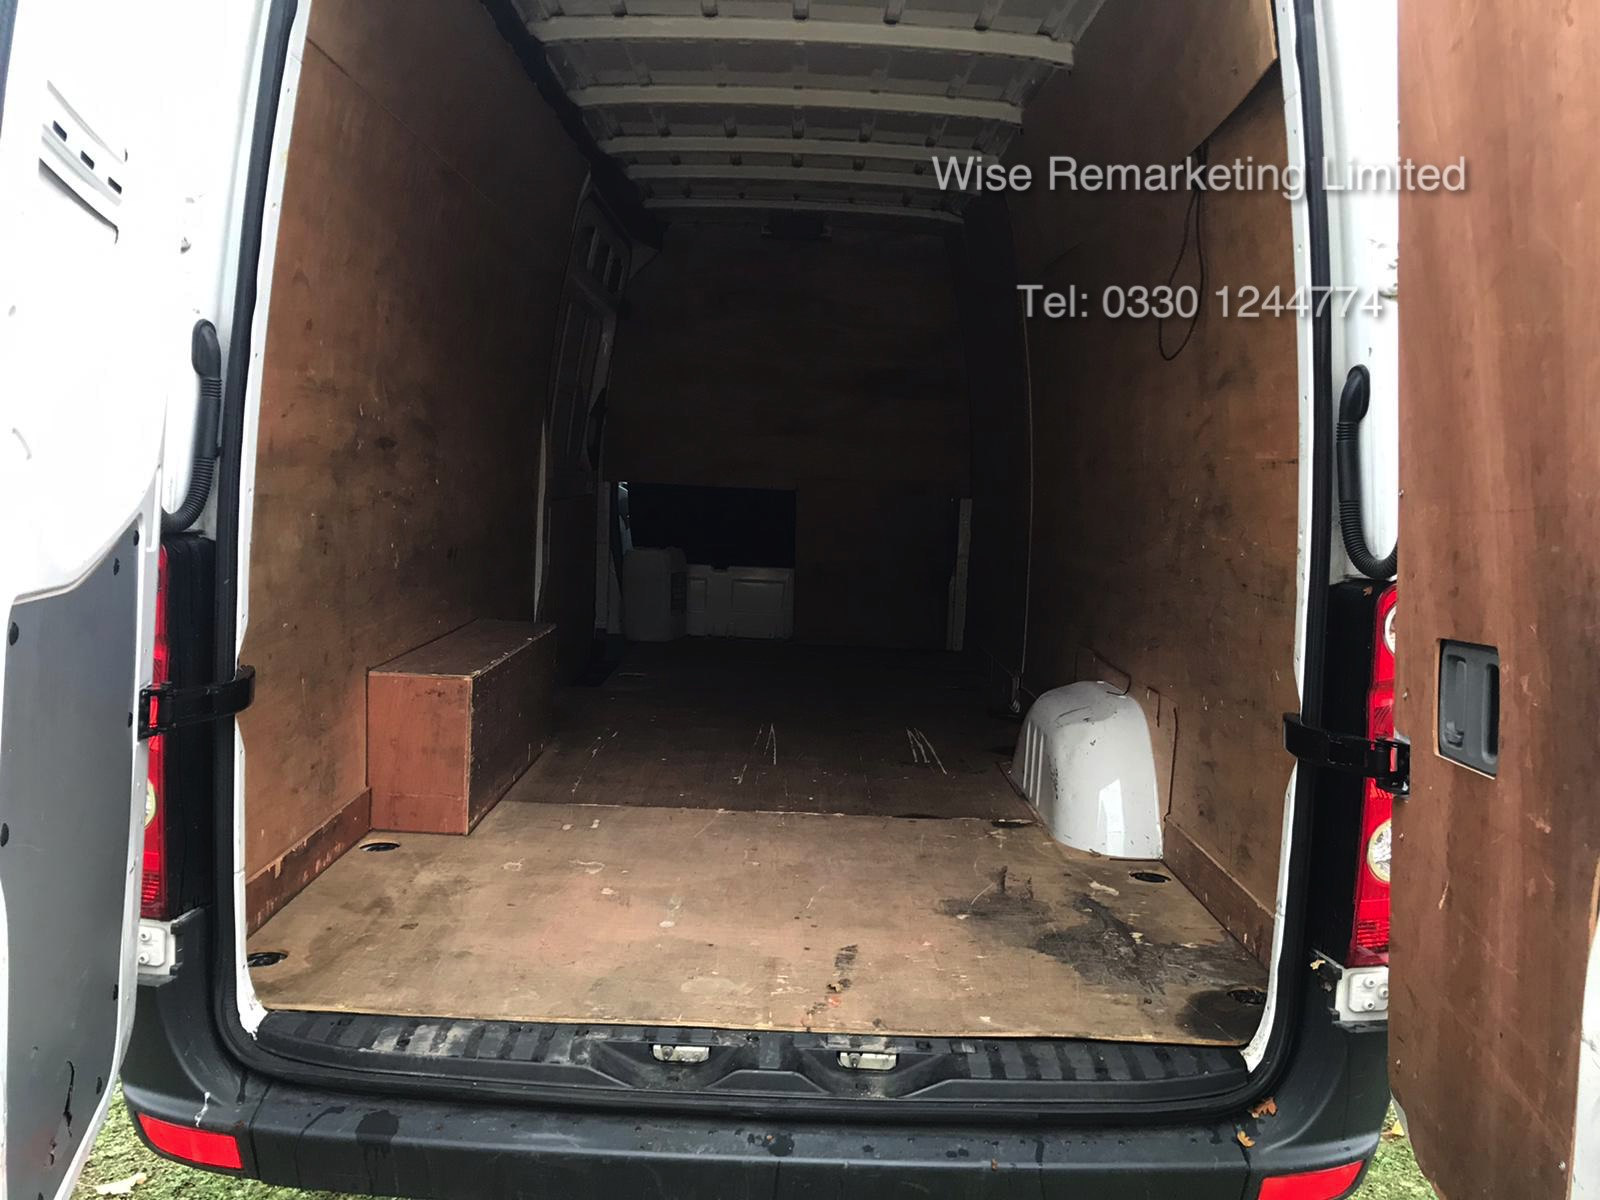 Volkswagen Crafter CR35 Startline 2.0l TDi - LWB - 2016 Model -1 Keeper From New - Service History - Image 5 of 15